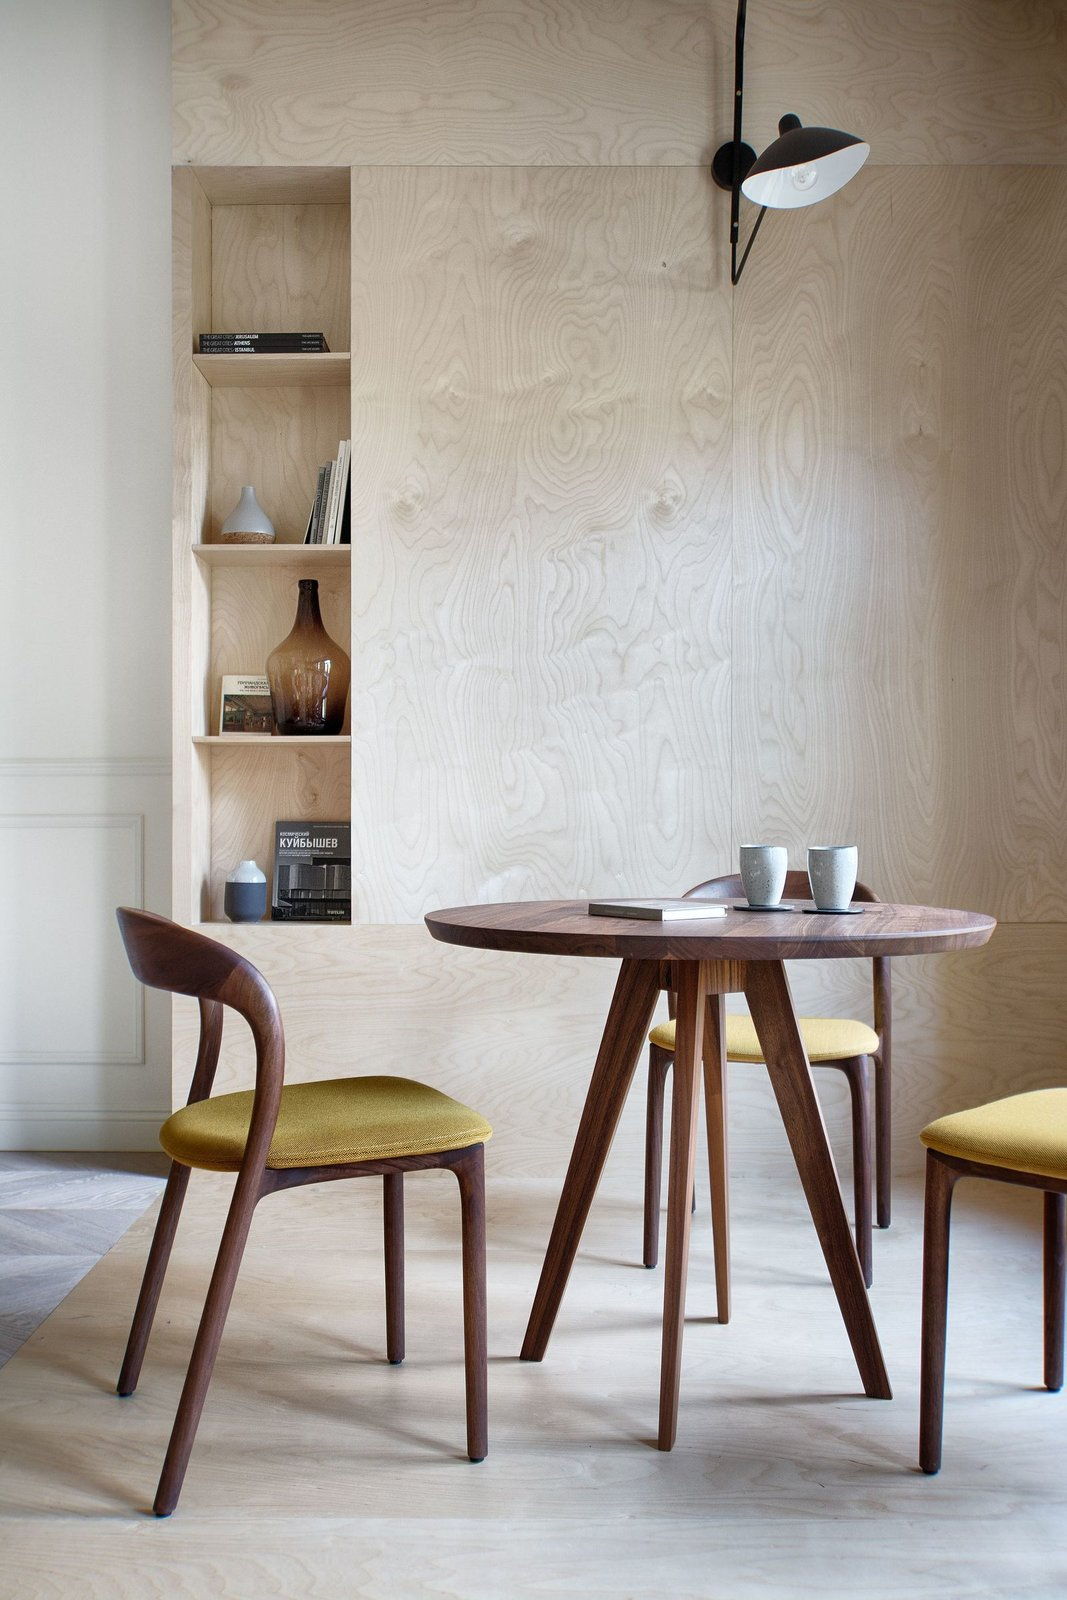 The dining area in INT2 architecture's Saint Petersburg Apartment